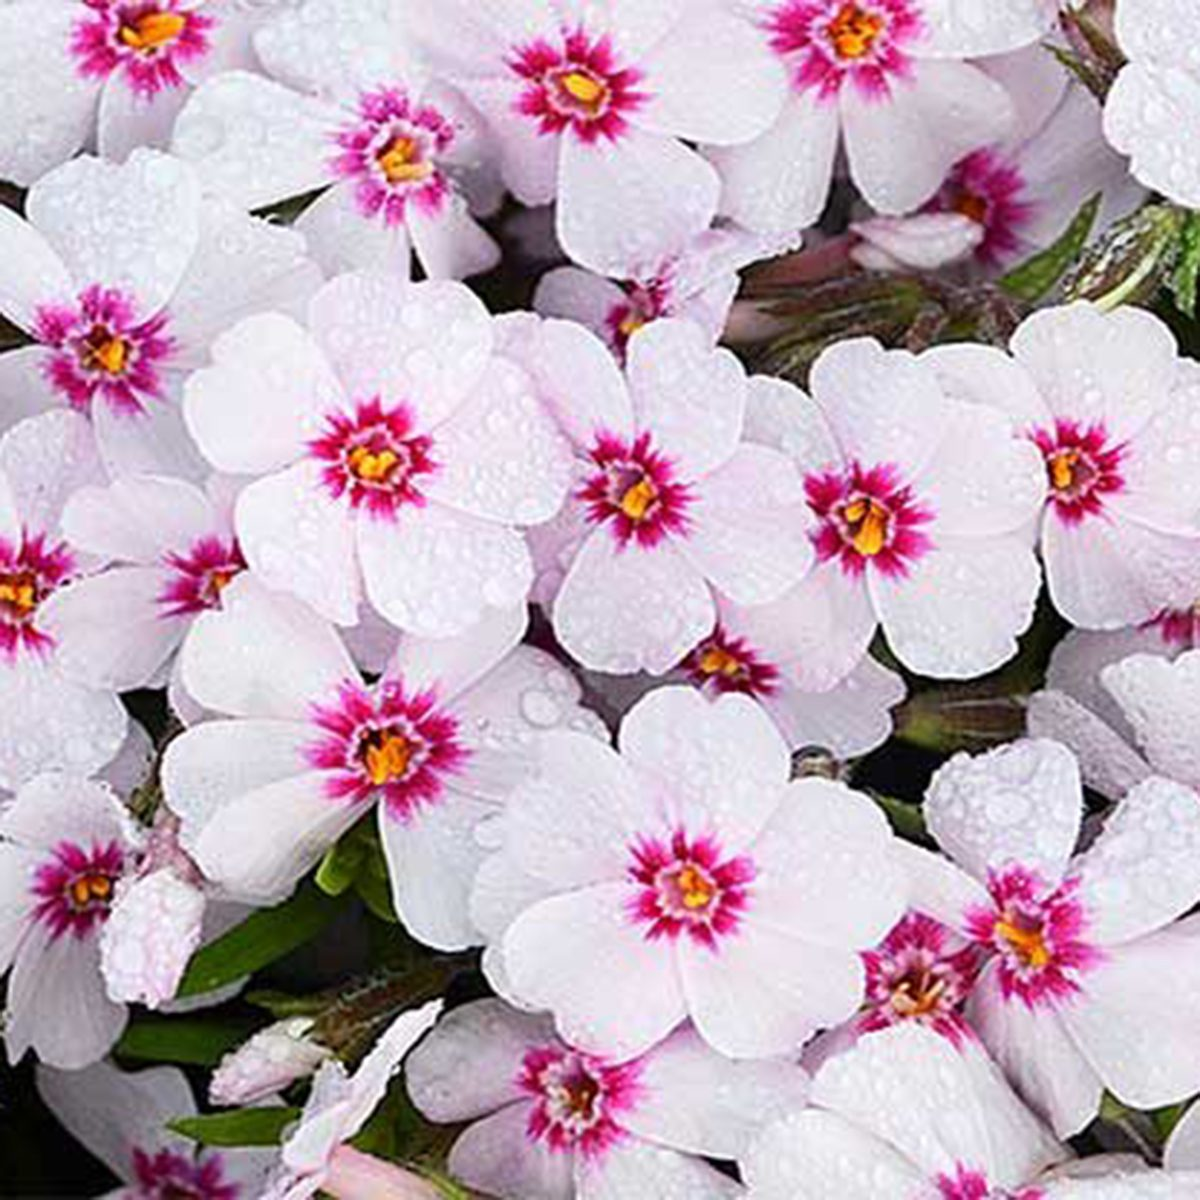 Pink And White Creeping Phlox Spring Flower Walters Gardens